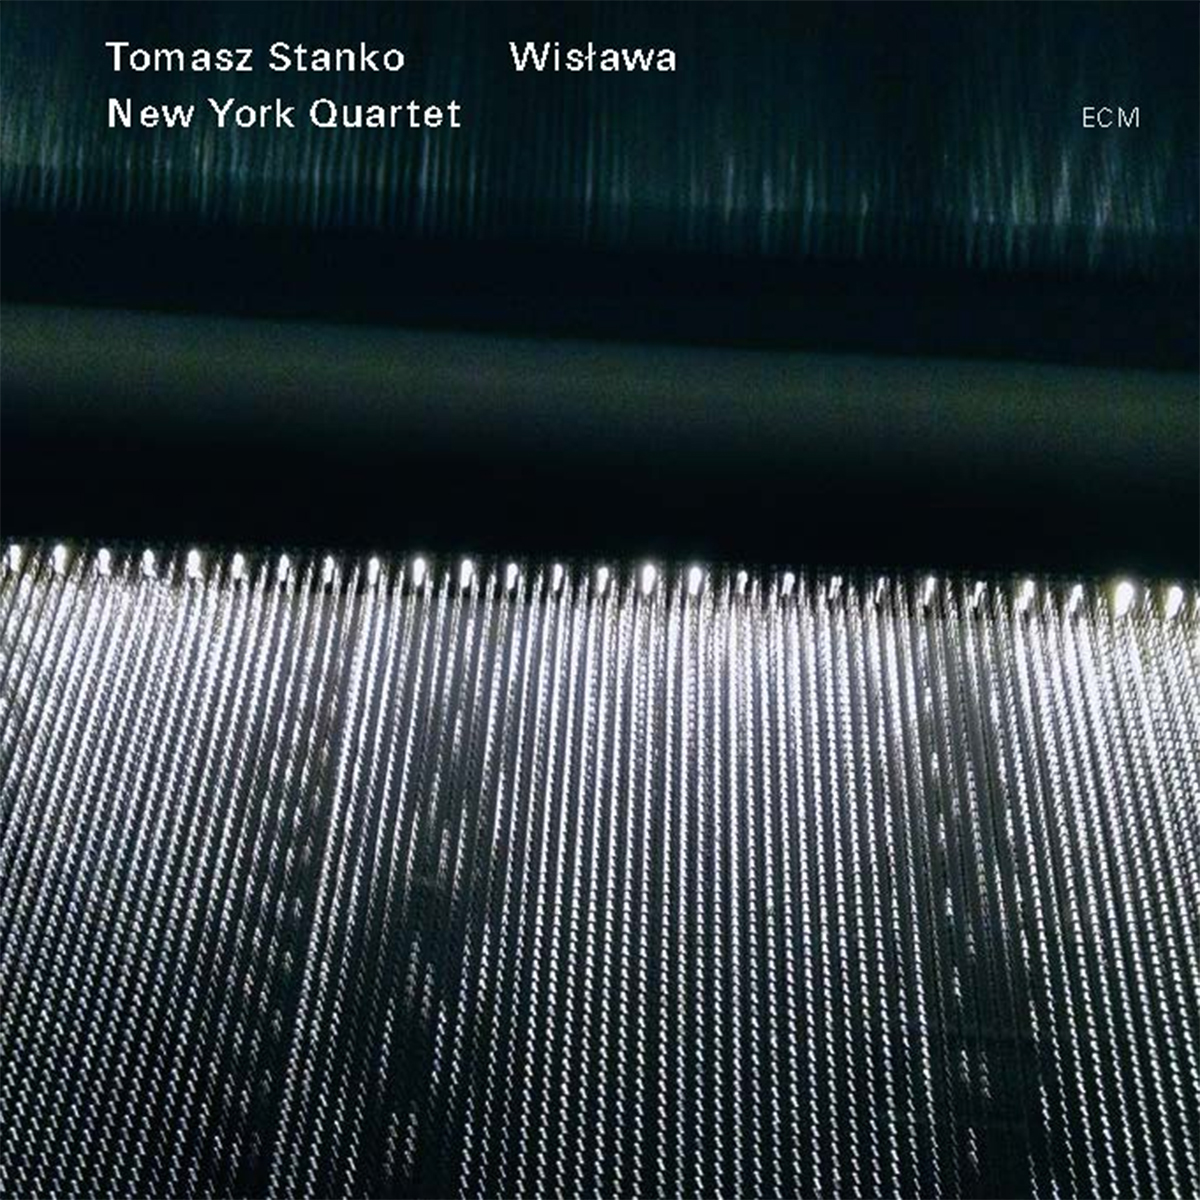 ecm-records-wislawa